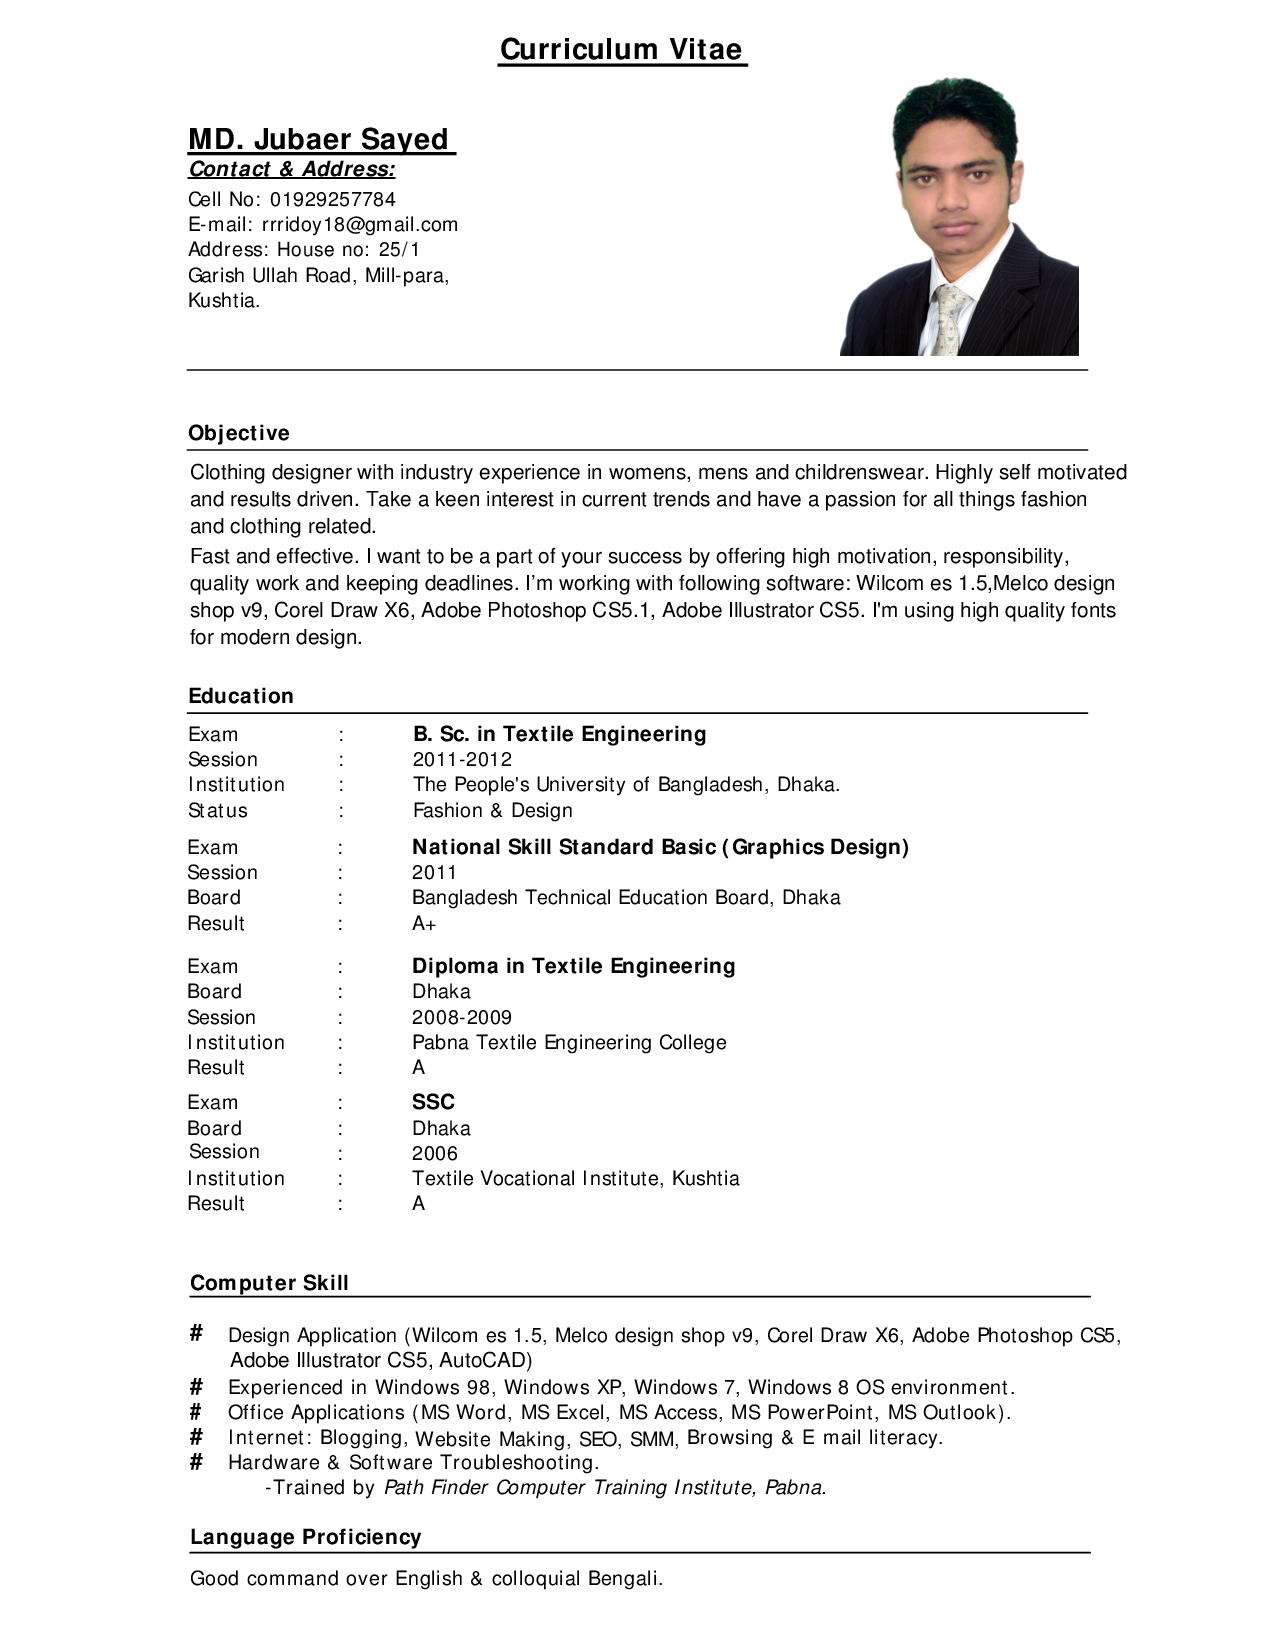 example resume computer skills and education for curriculum vitae resume samples pdf curriculum vitae - Sample Format Of Resume